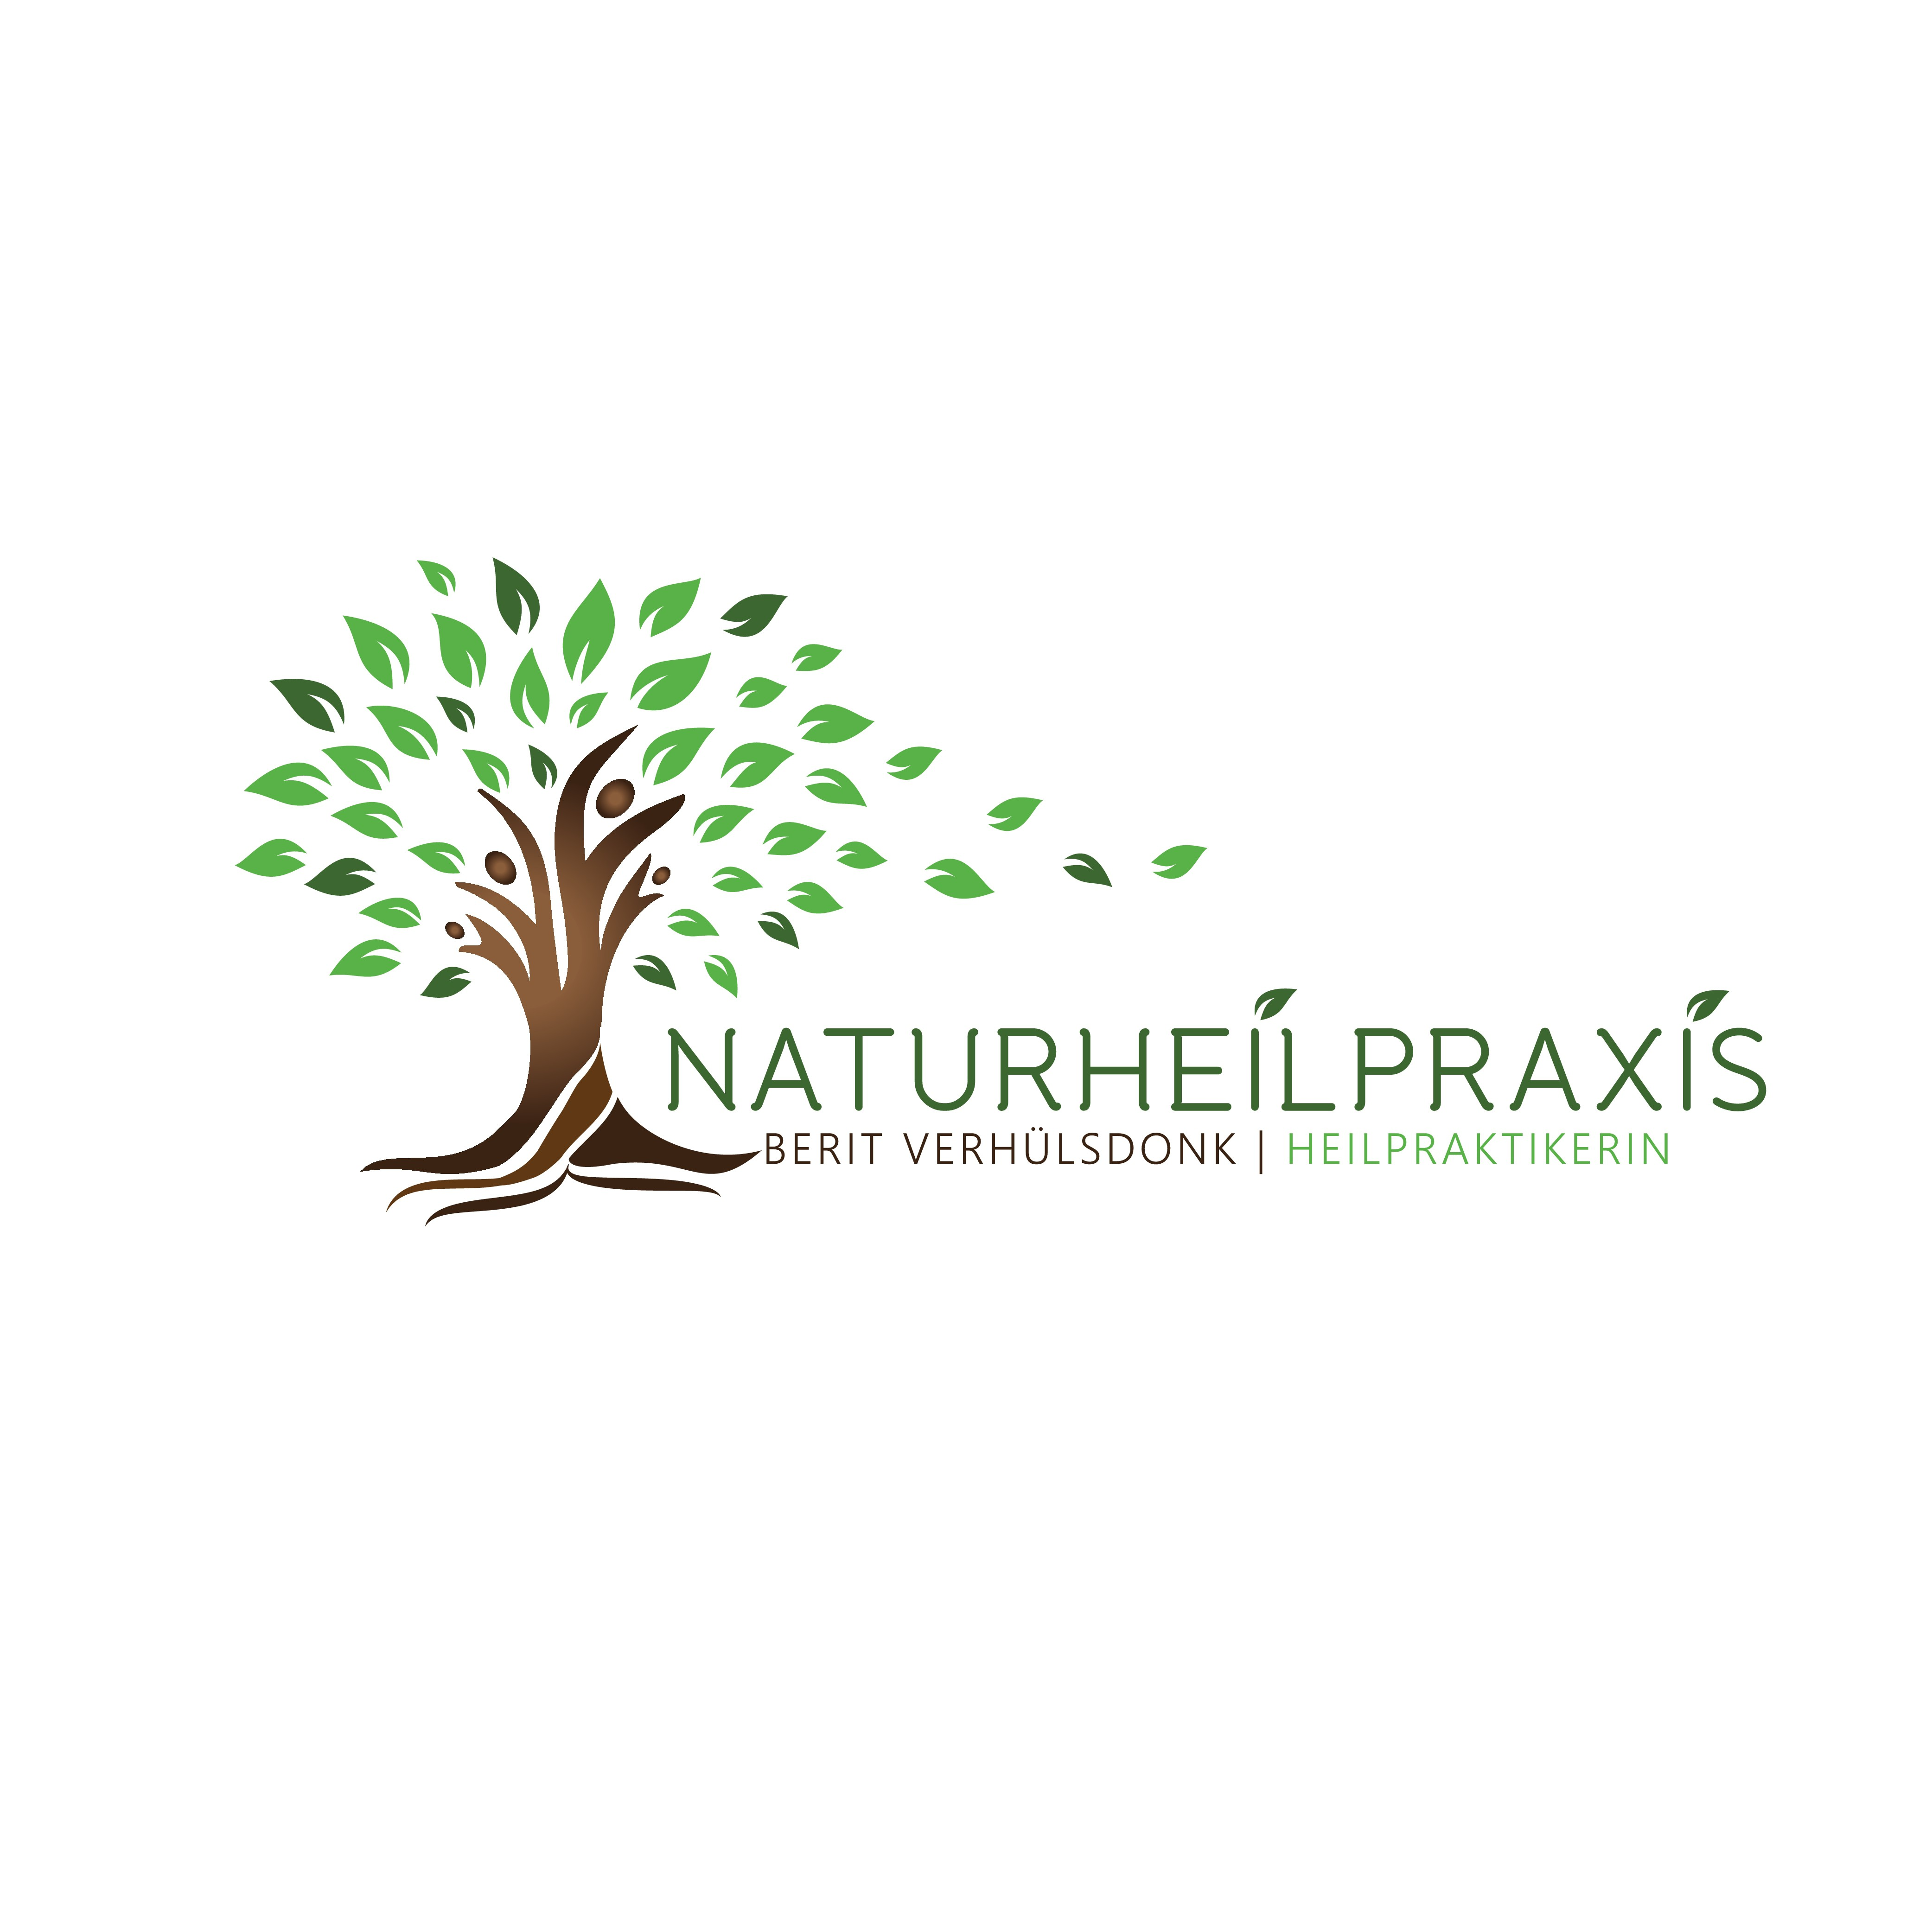 Create an individual logo for an wholisticalle working alternativ practitioner with nordic roots